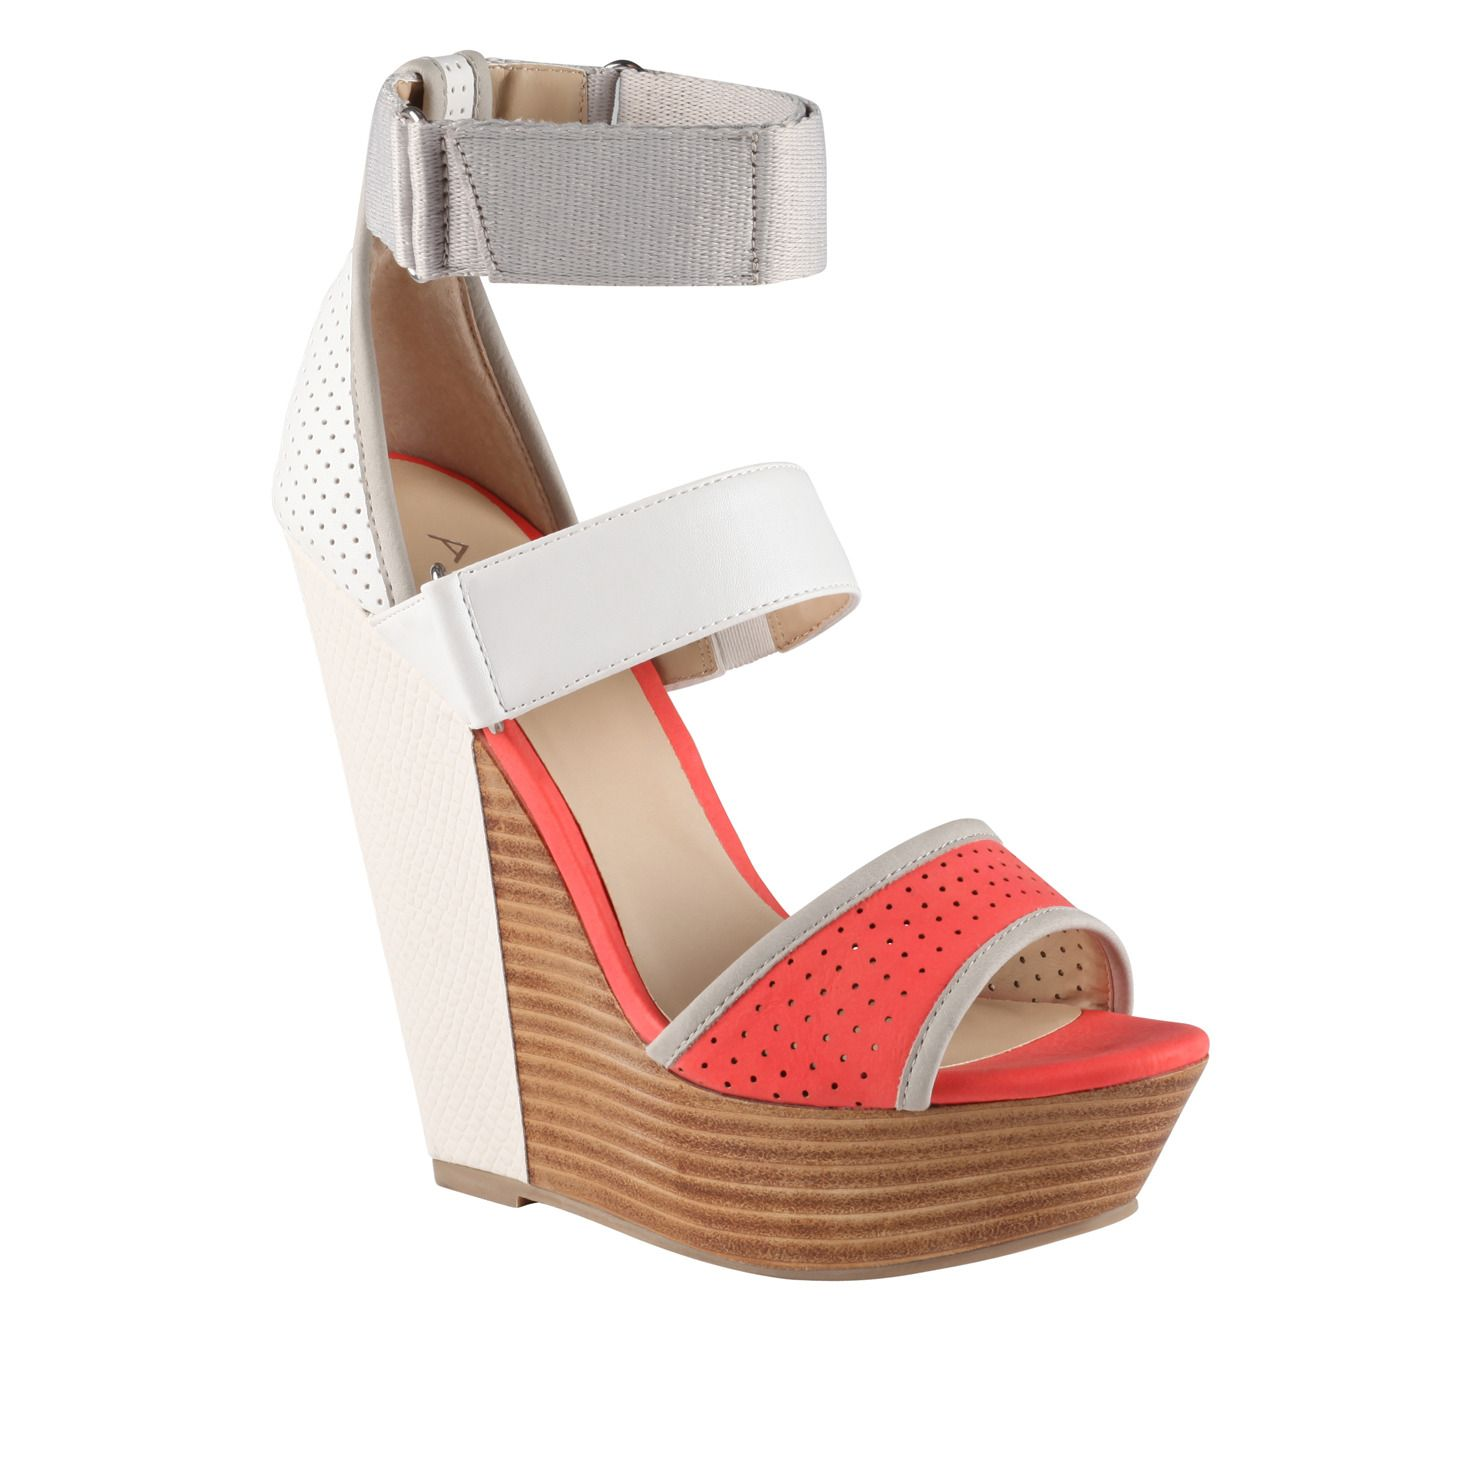 4c98930b6e5 MUHAYYA - women s wedges sandals for sale at ALDO Shoes.